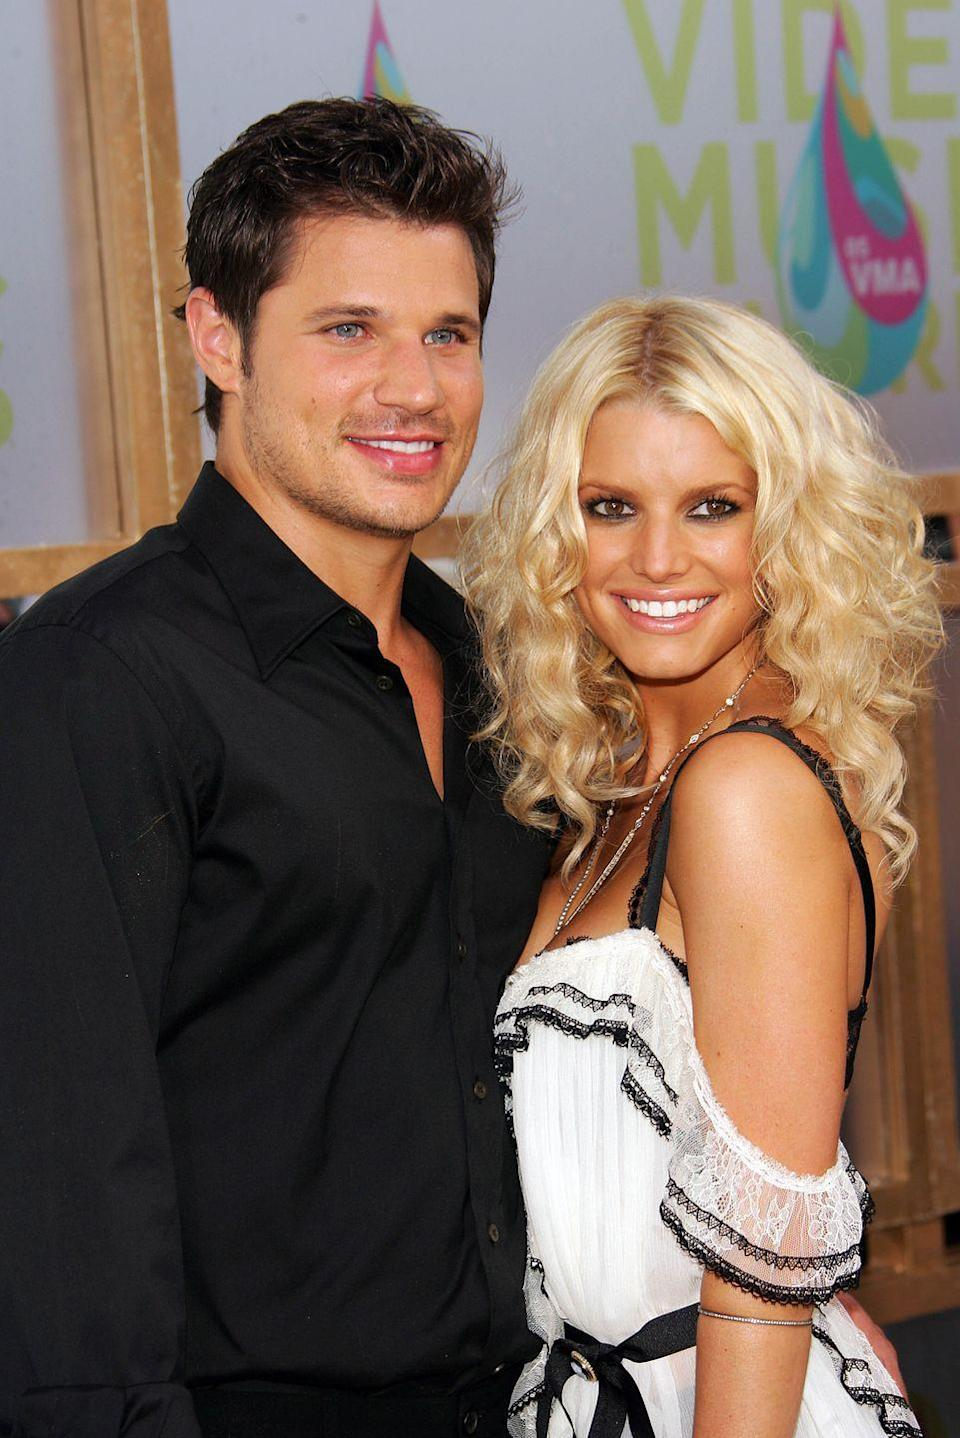 <p>Could you imagine inviting a television crew into your house just six weeks after tying the knot? That's exactly what pop stars Nick Lachey and Jessica Simpson did back in 2003, and <em>Newlyweds</em> turned into several seasons of reality TV gold. The two eventually split shortly after the cameras stopped rolling. </p>